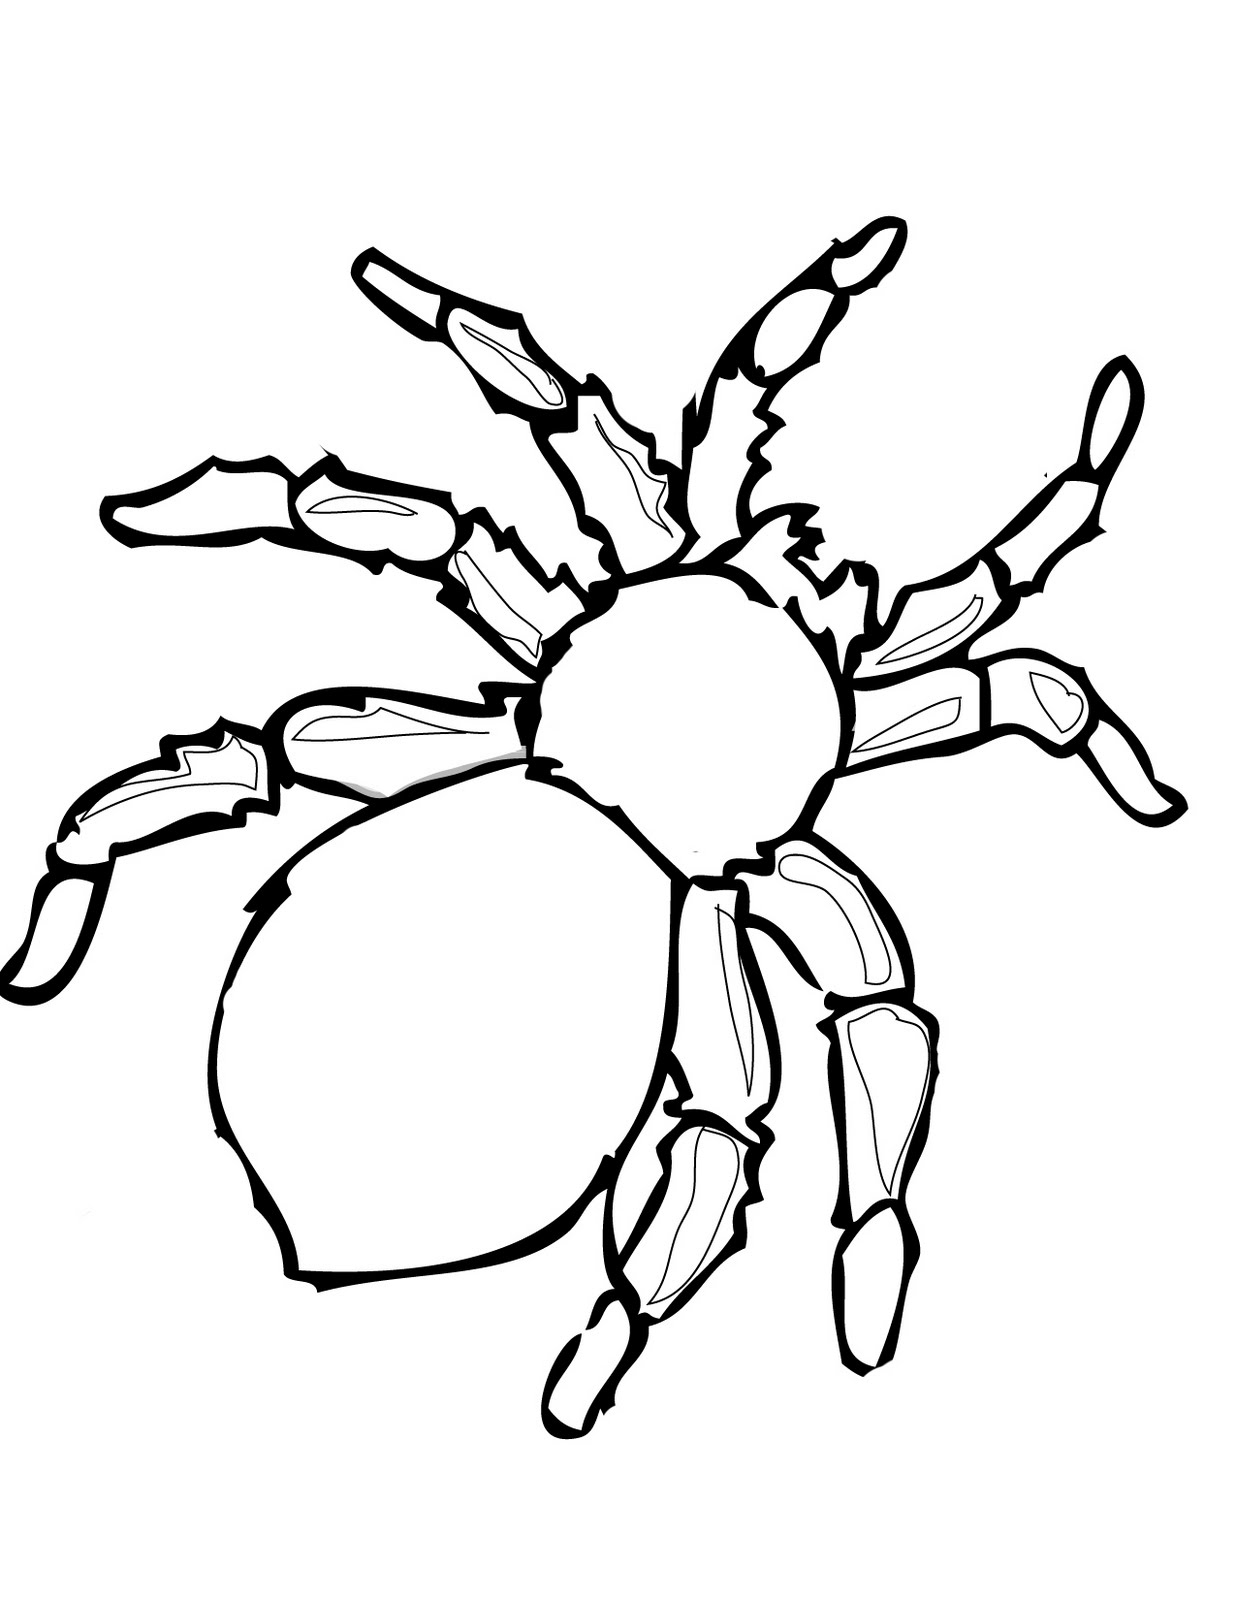 1236x1600 Coloring Pages Spiderman Venom Tags Coloring Pages Spider Easy